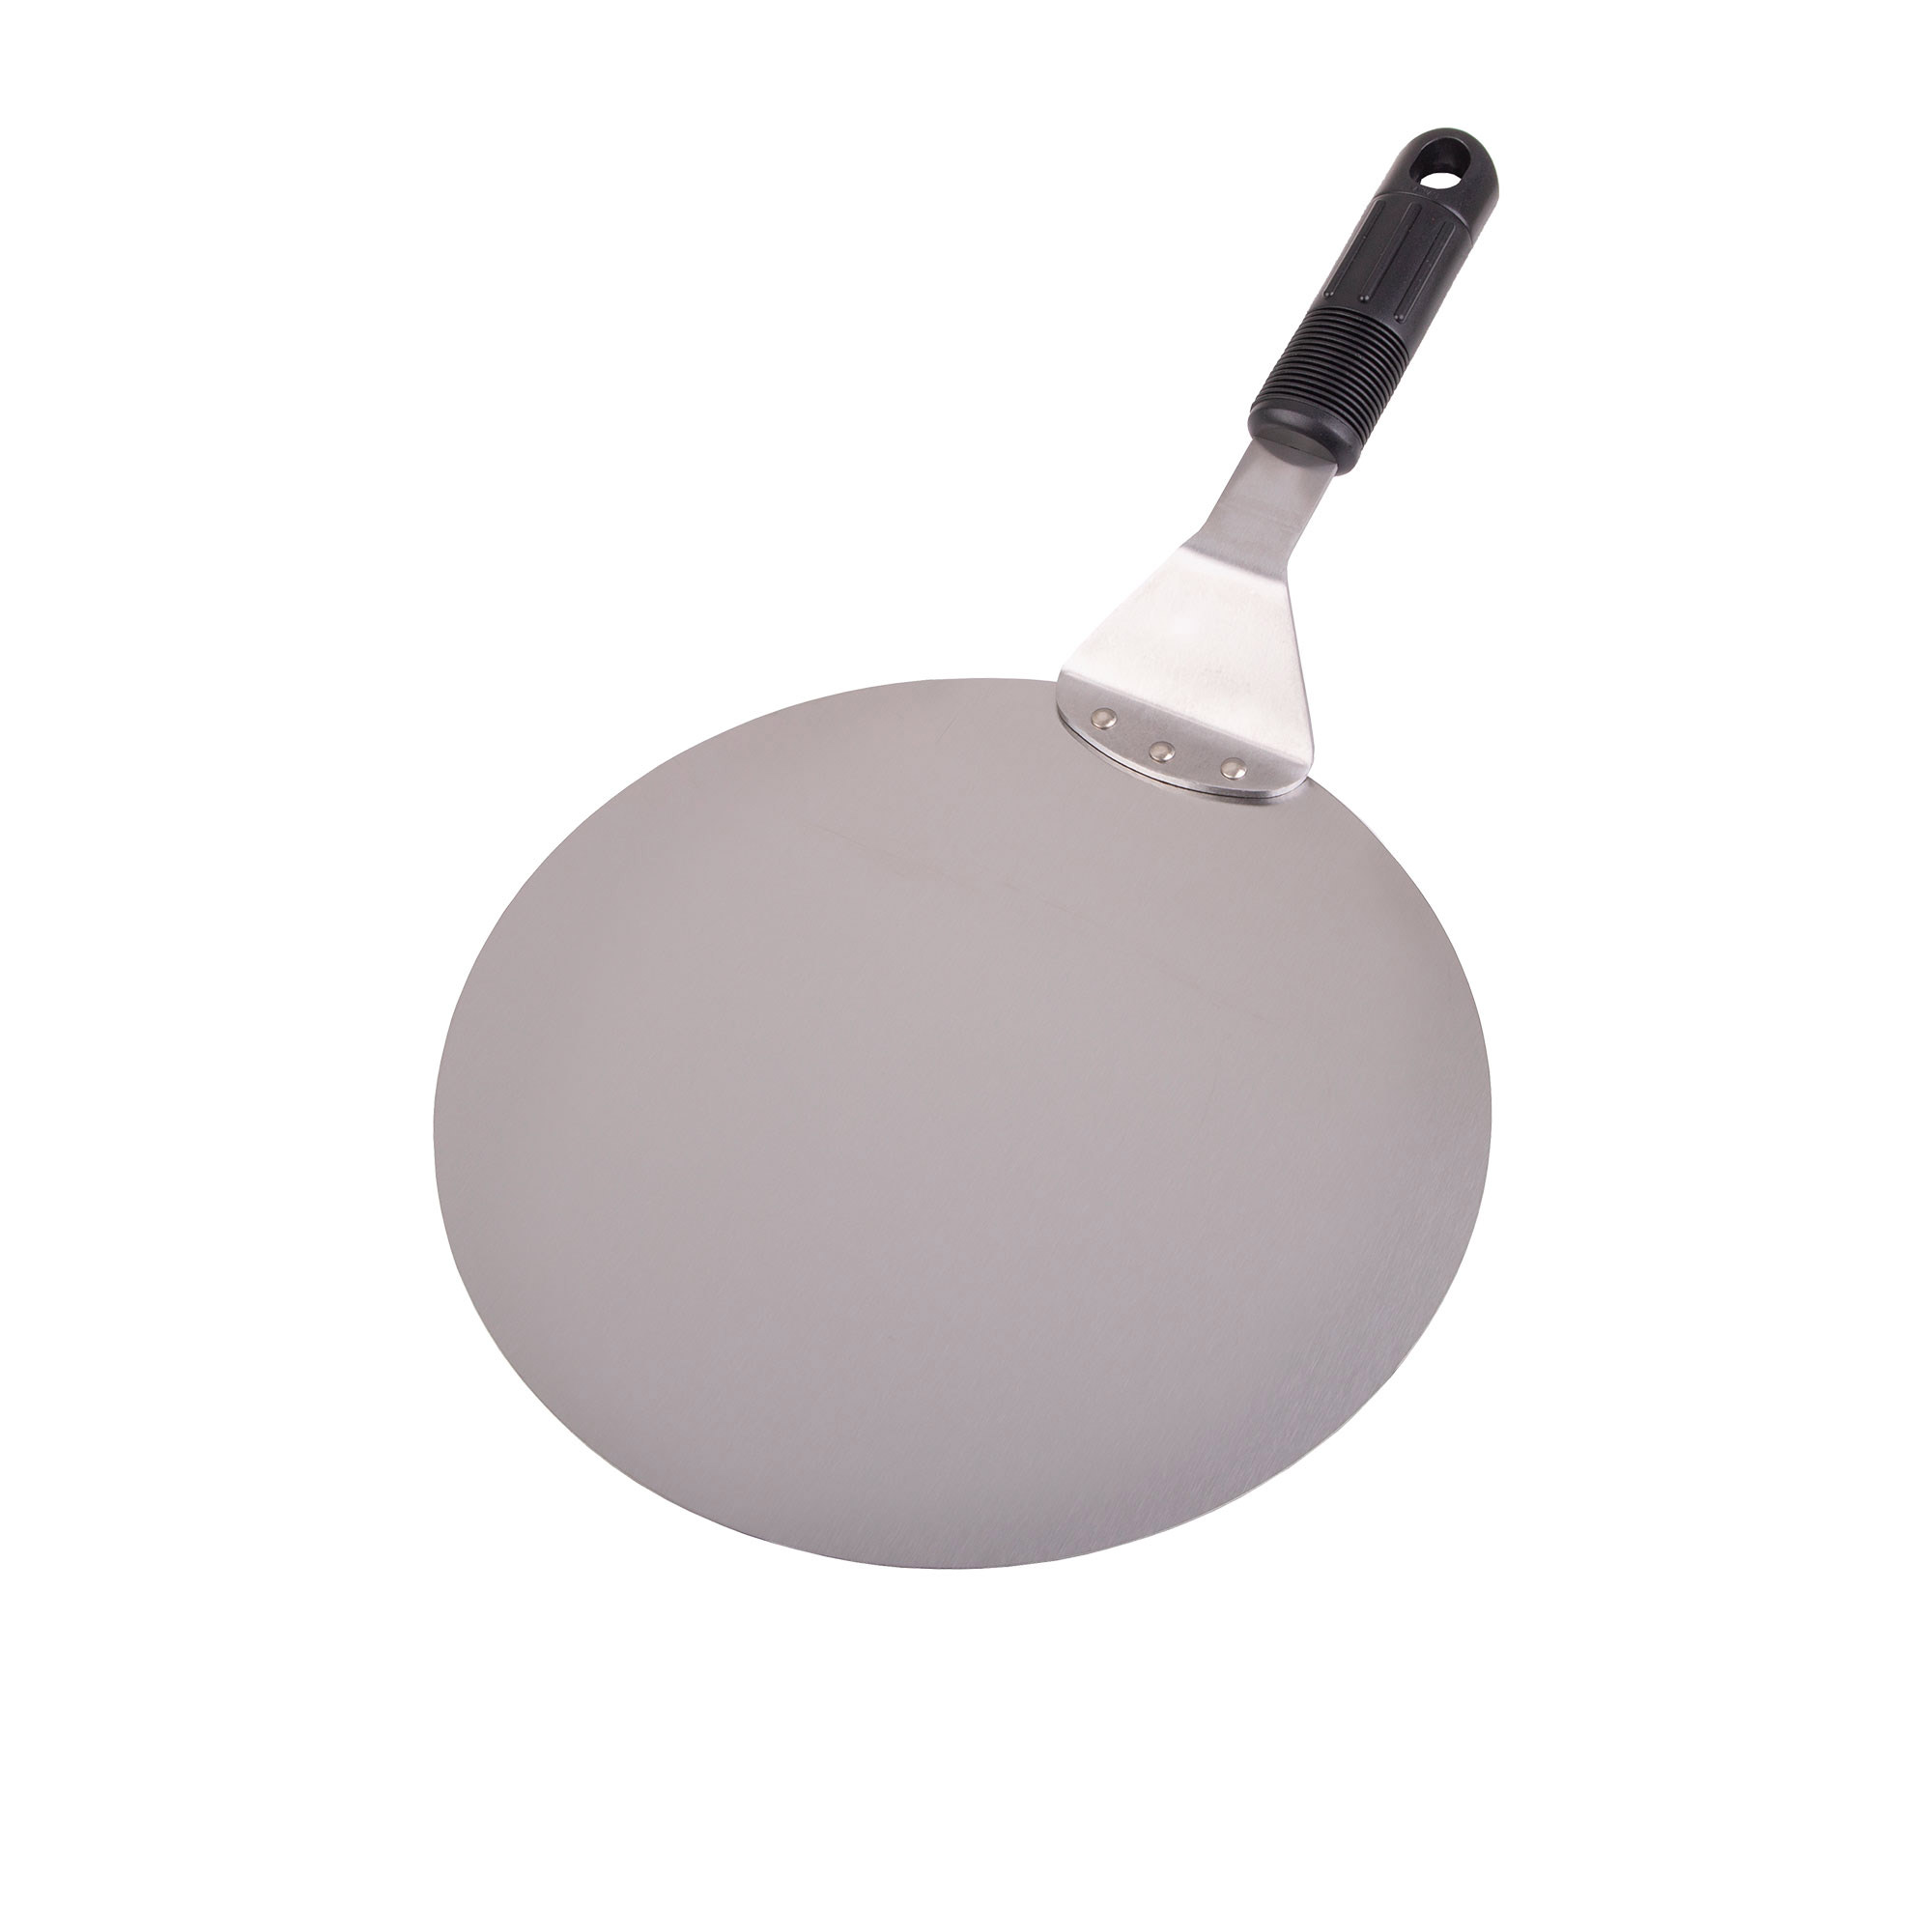 Al Dente Stainless Steel Pizza Lifter 25cm